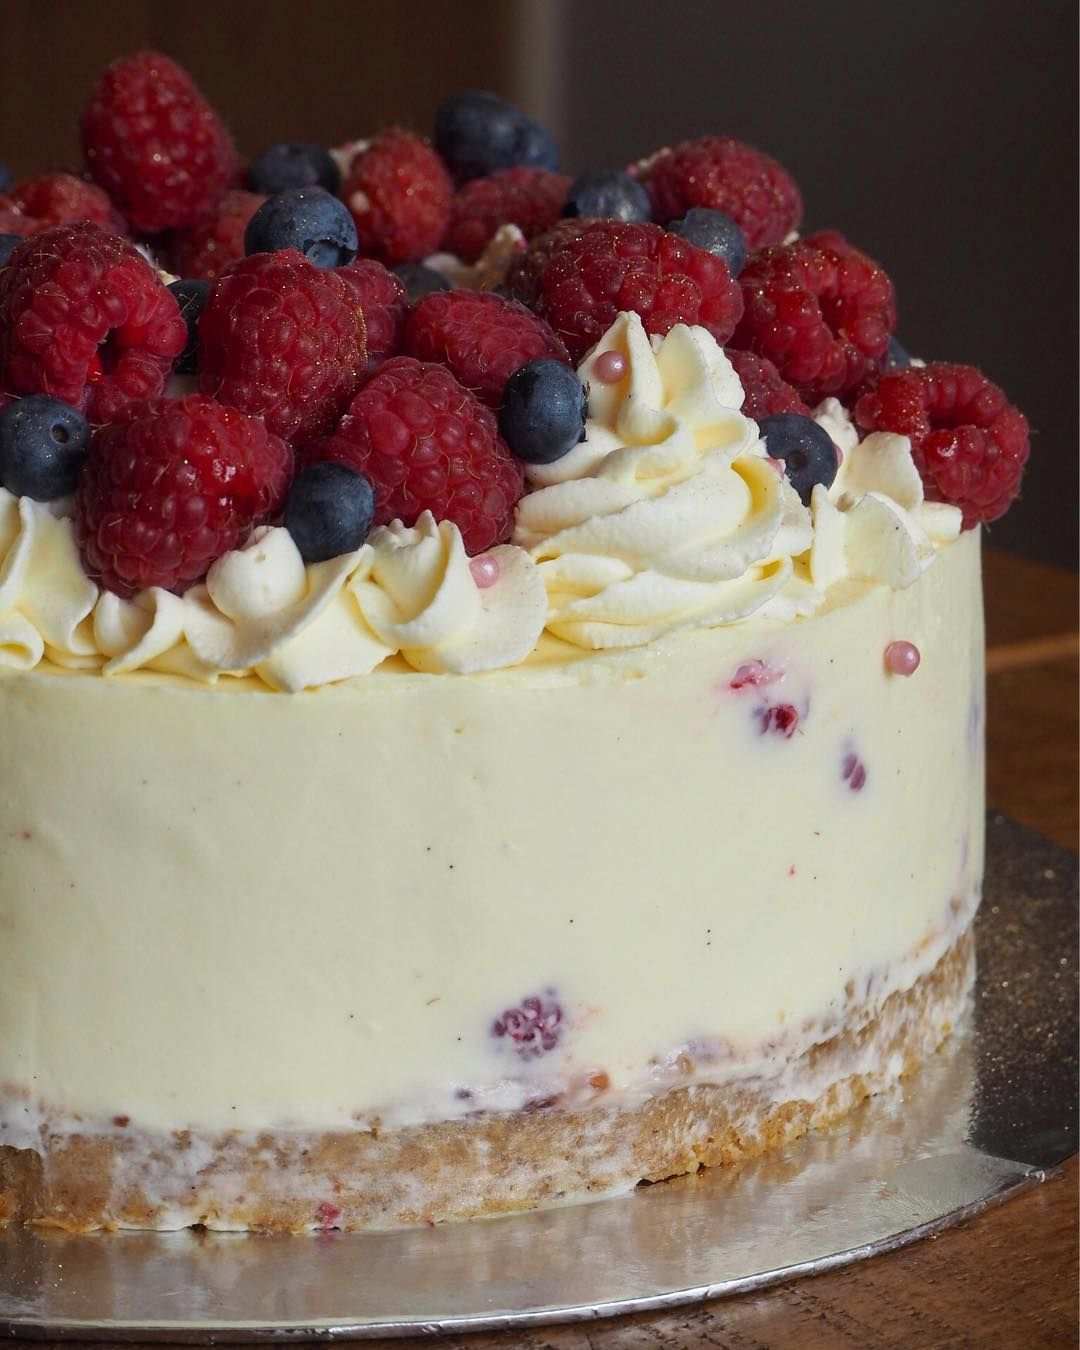 Mixed Berry Cheesecake #whitechocolateraspberrycheesecake